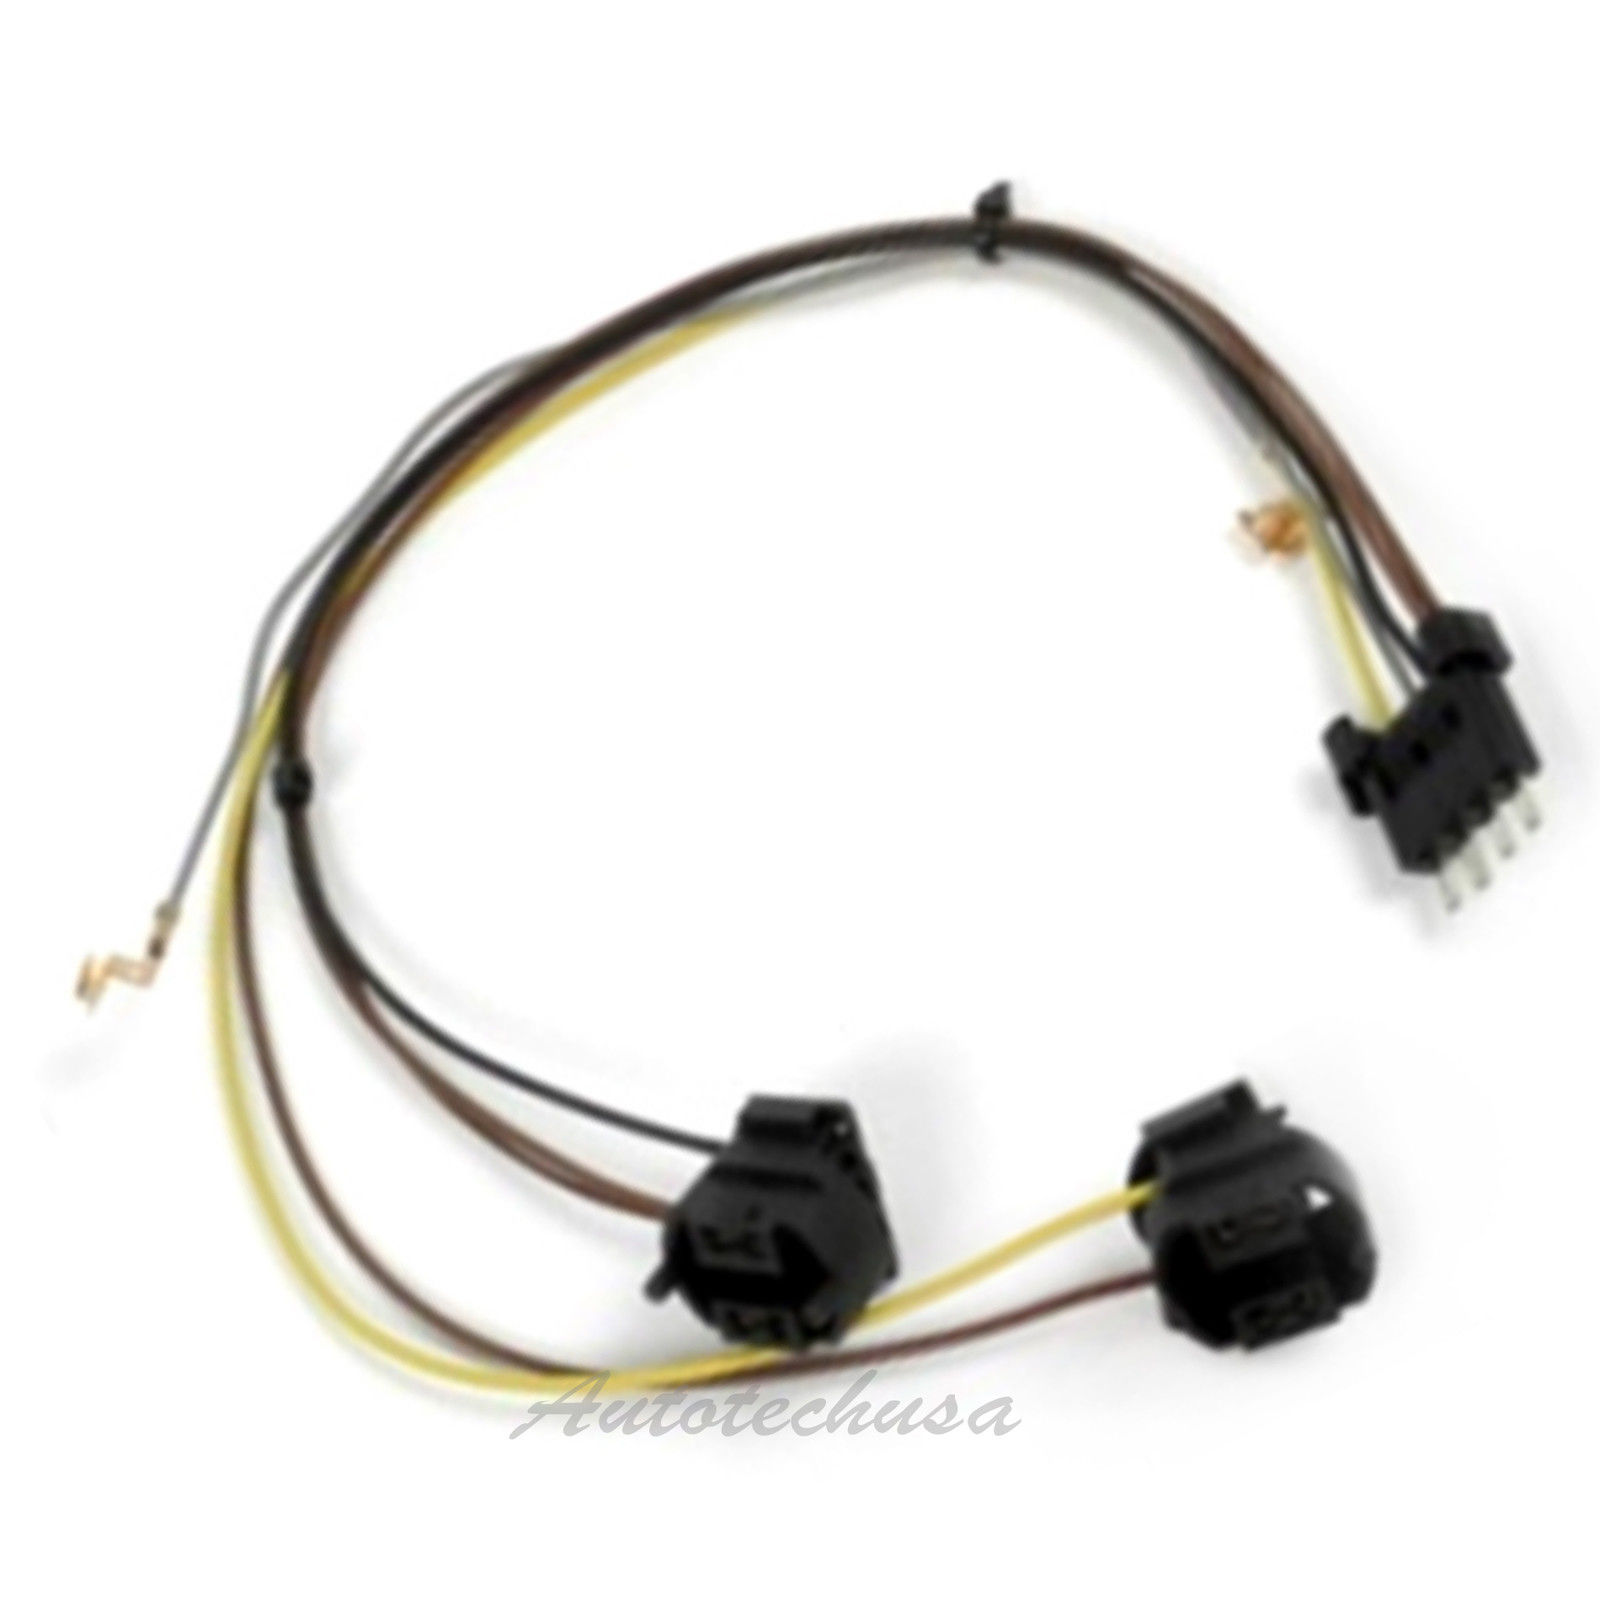 hight resolution of for right headlight wire harness repair kit d125r w164 ml320 ml350 headlight wiring harness 2012 chevy